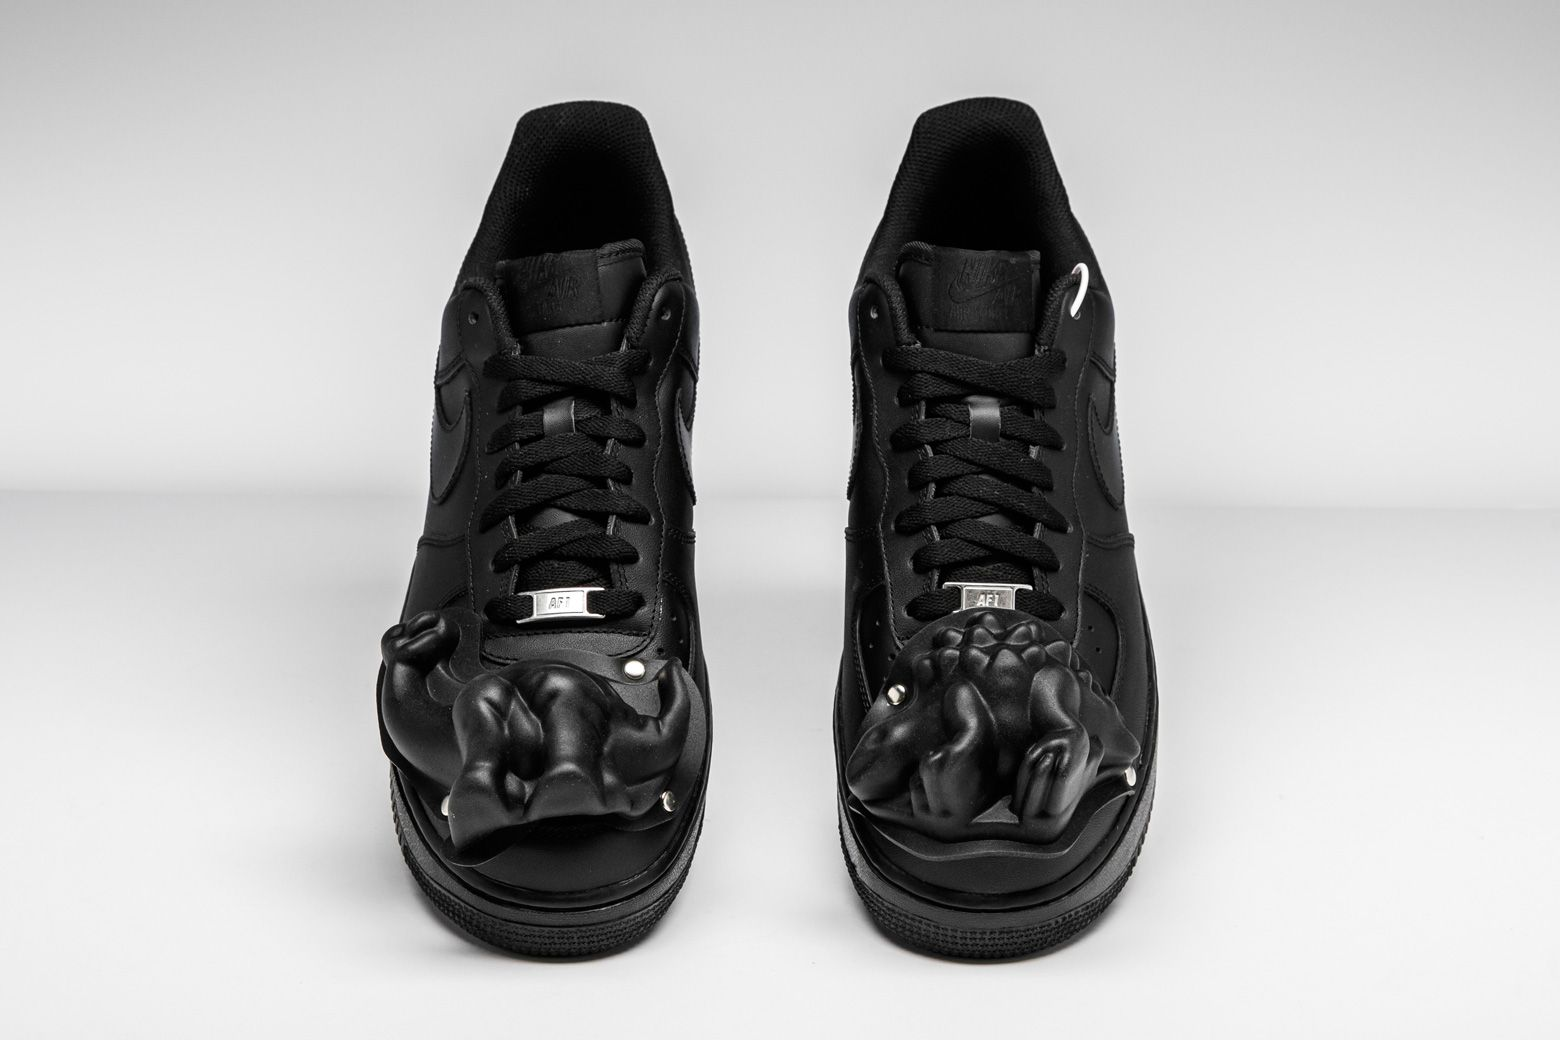 COMME des GARÇONS customized the Air Force 1 Low with a dinosaur mold-like  structure on the toe box. f5e342255e